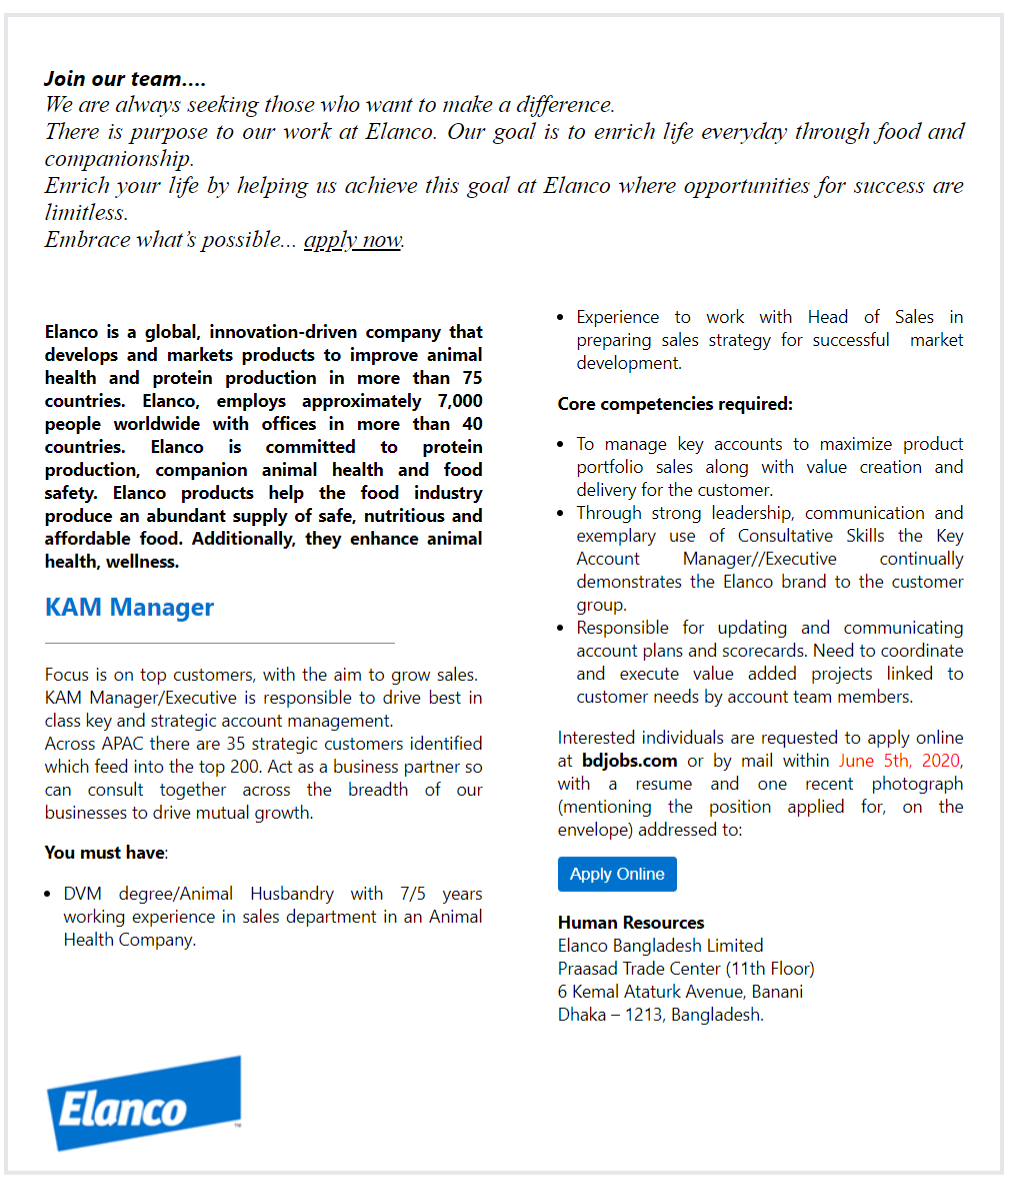 Elanco Bangladesh Limited Job Circular 2020